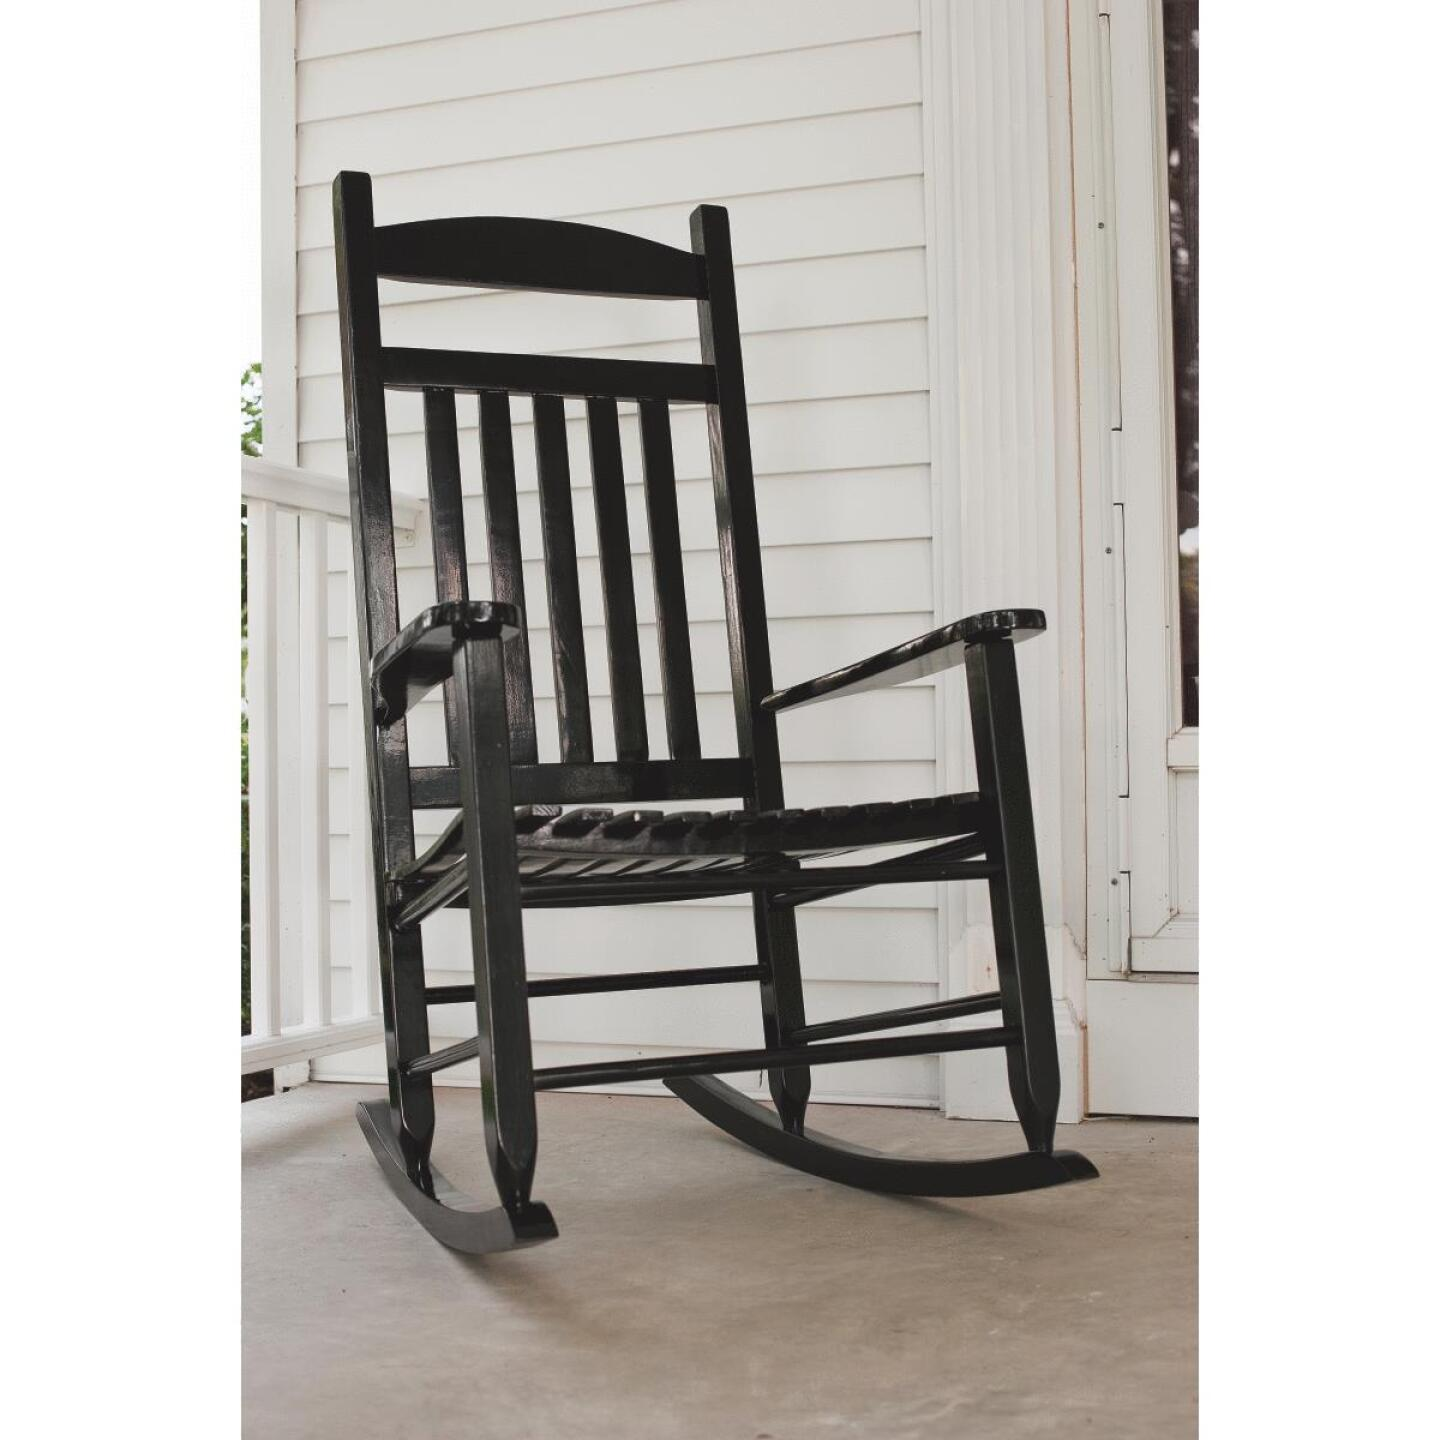 Knollwood Black Wood Mission Rocking Chair Image 2